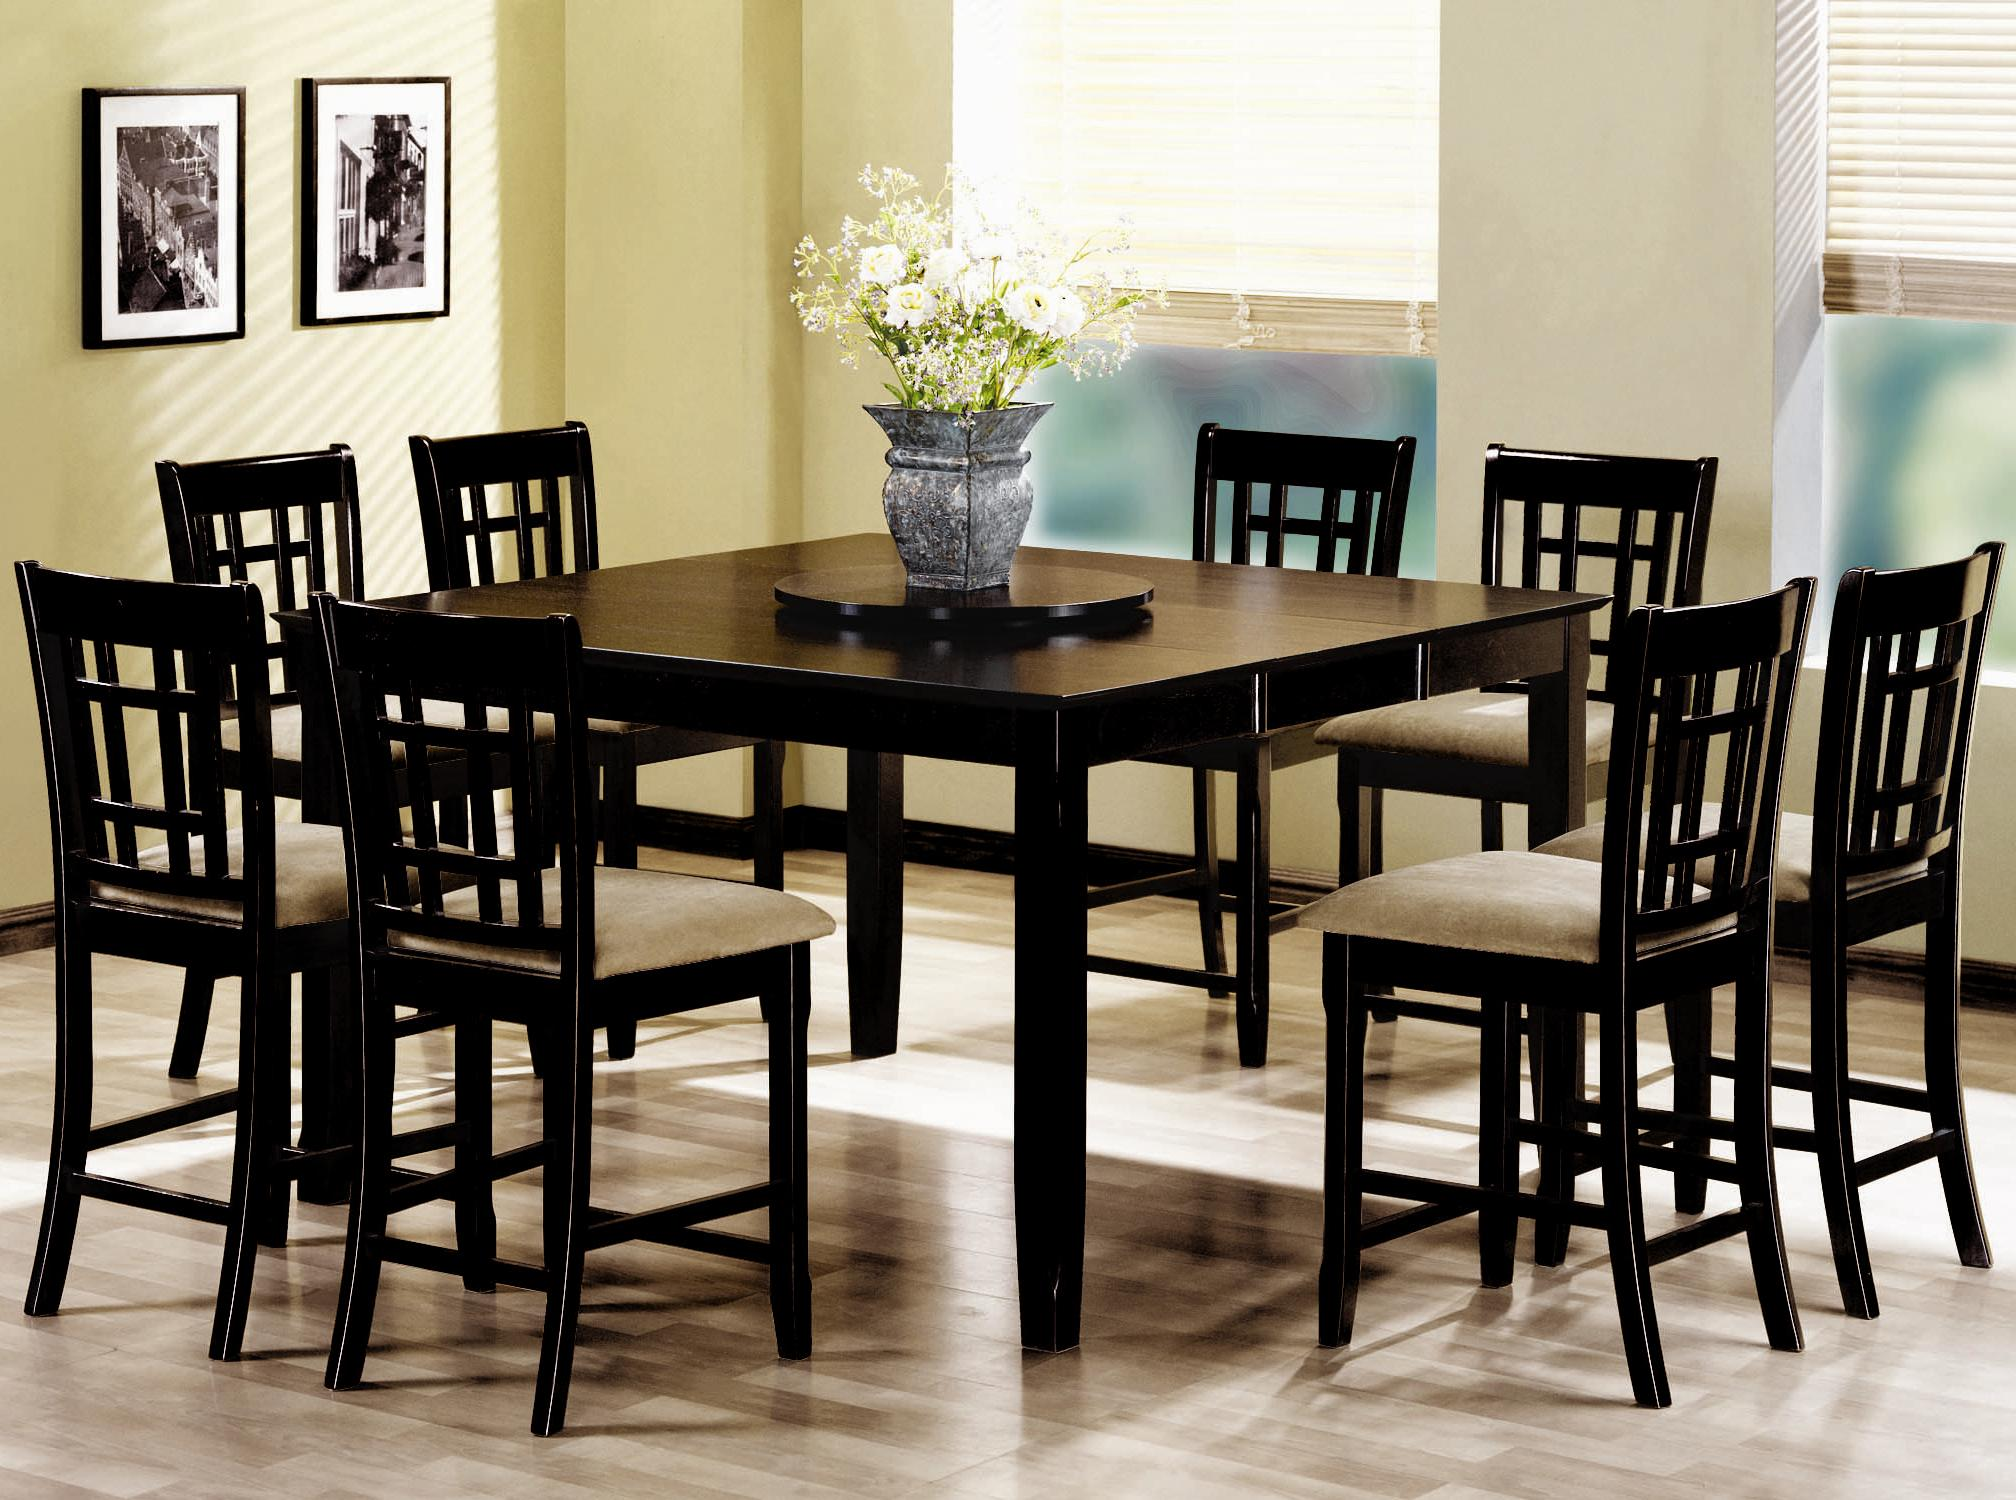 S Dining Room Furniture